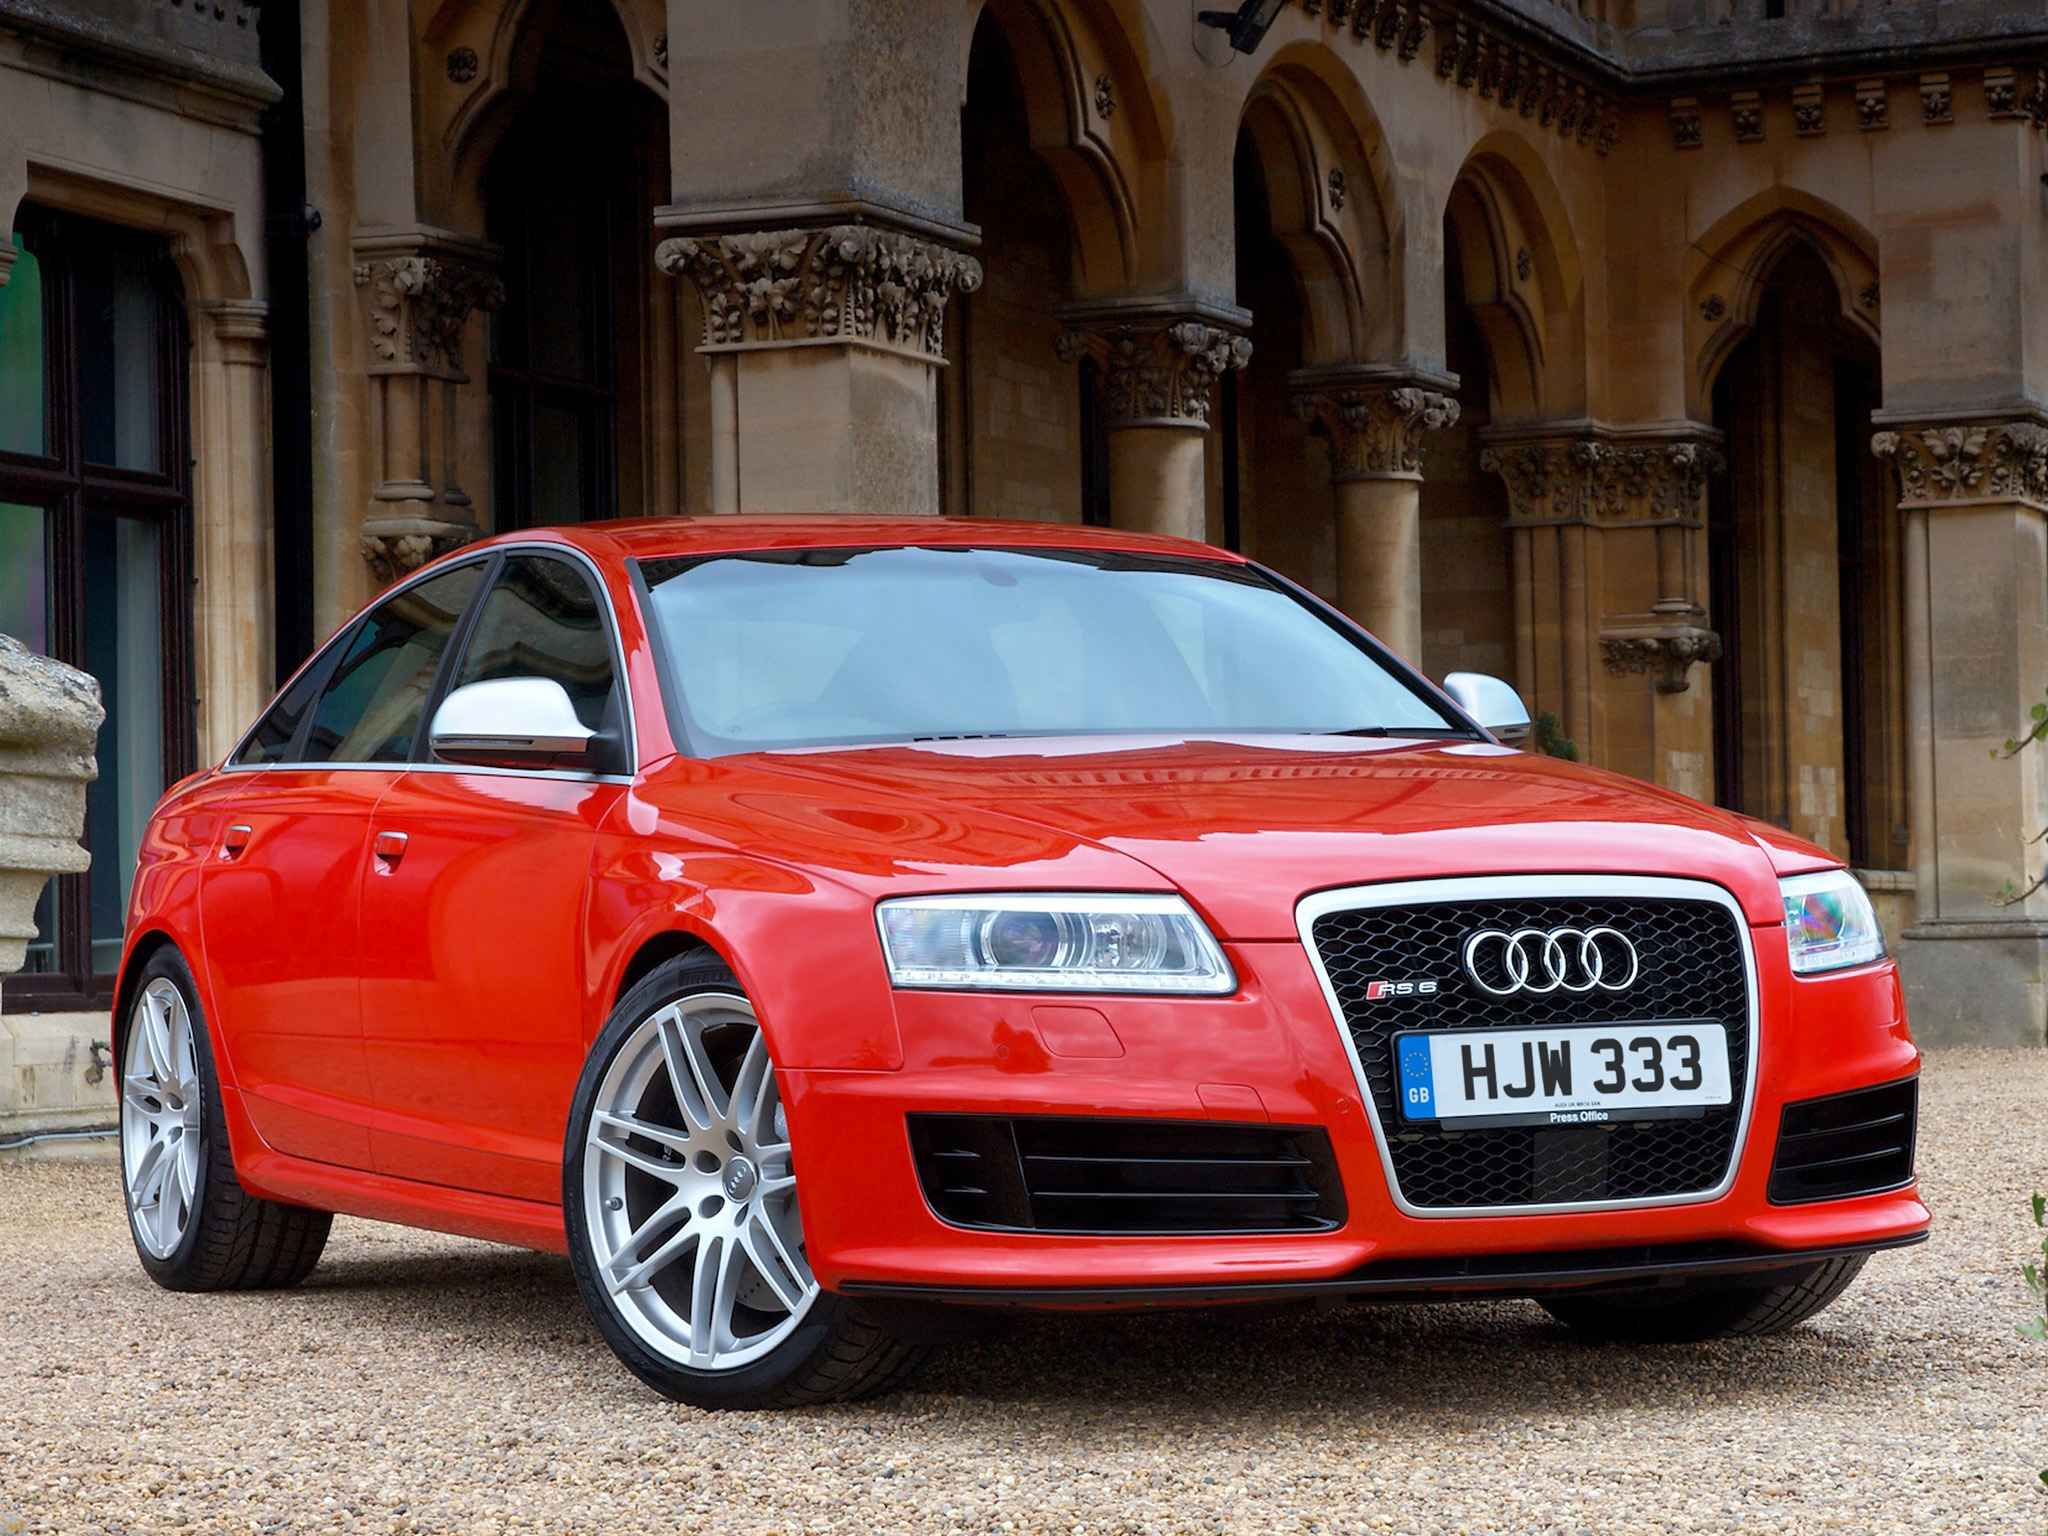 2010 Audi Rs6 c6 - pictures, information and specs - Auto ...